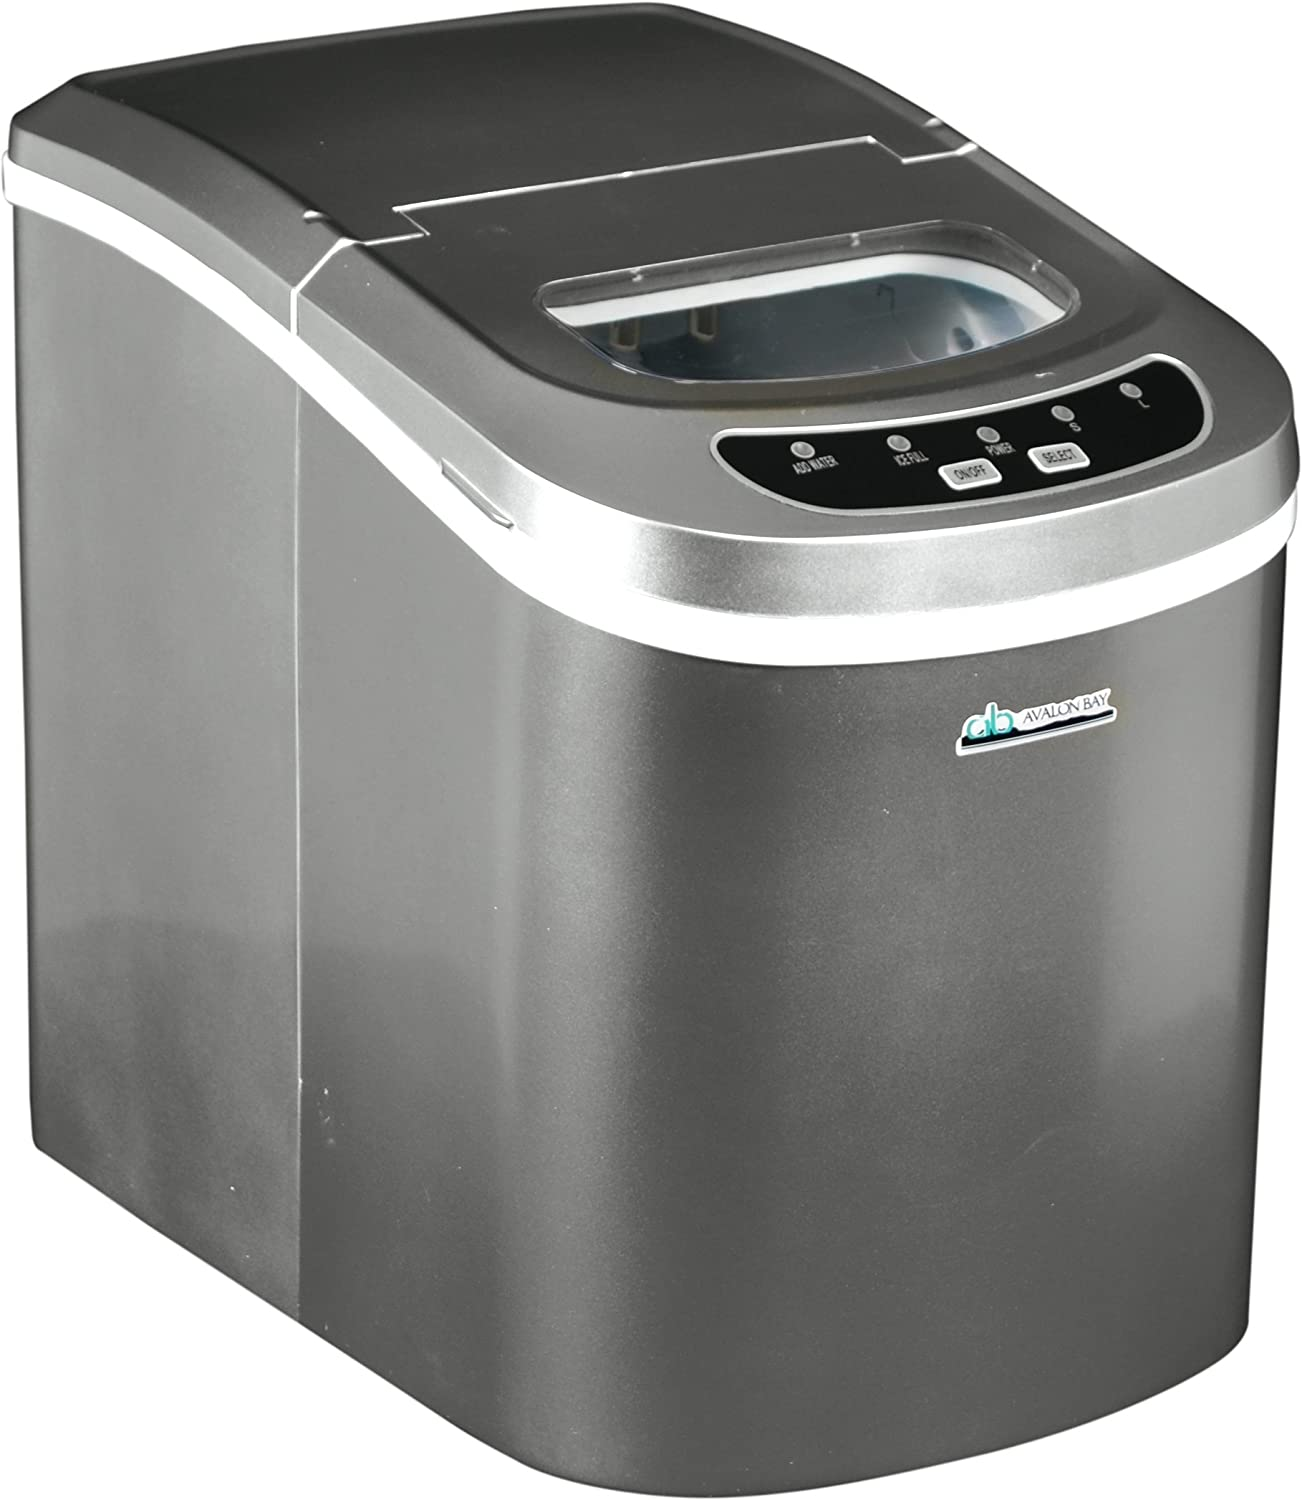 Avalon Bay Portable Ice Maker AB-ICE26S